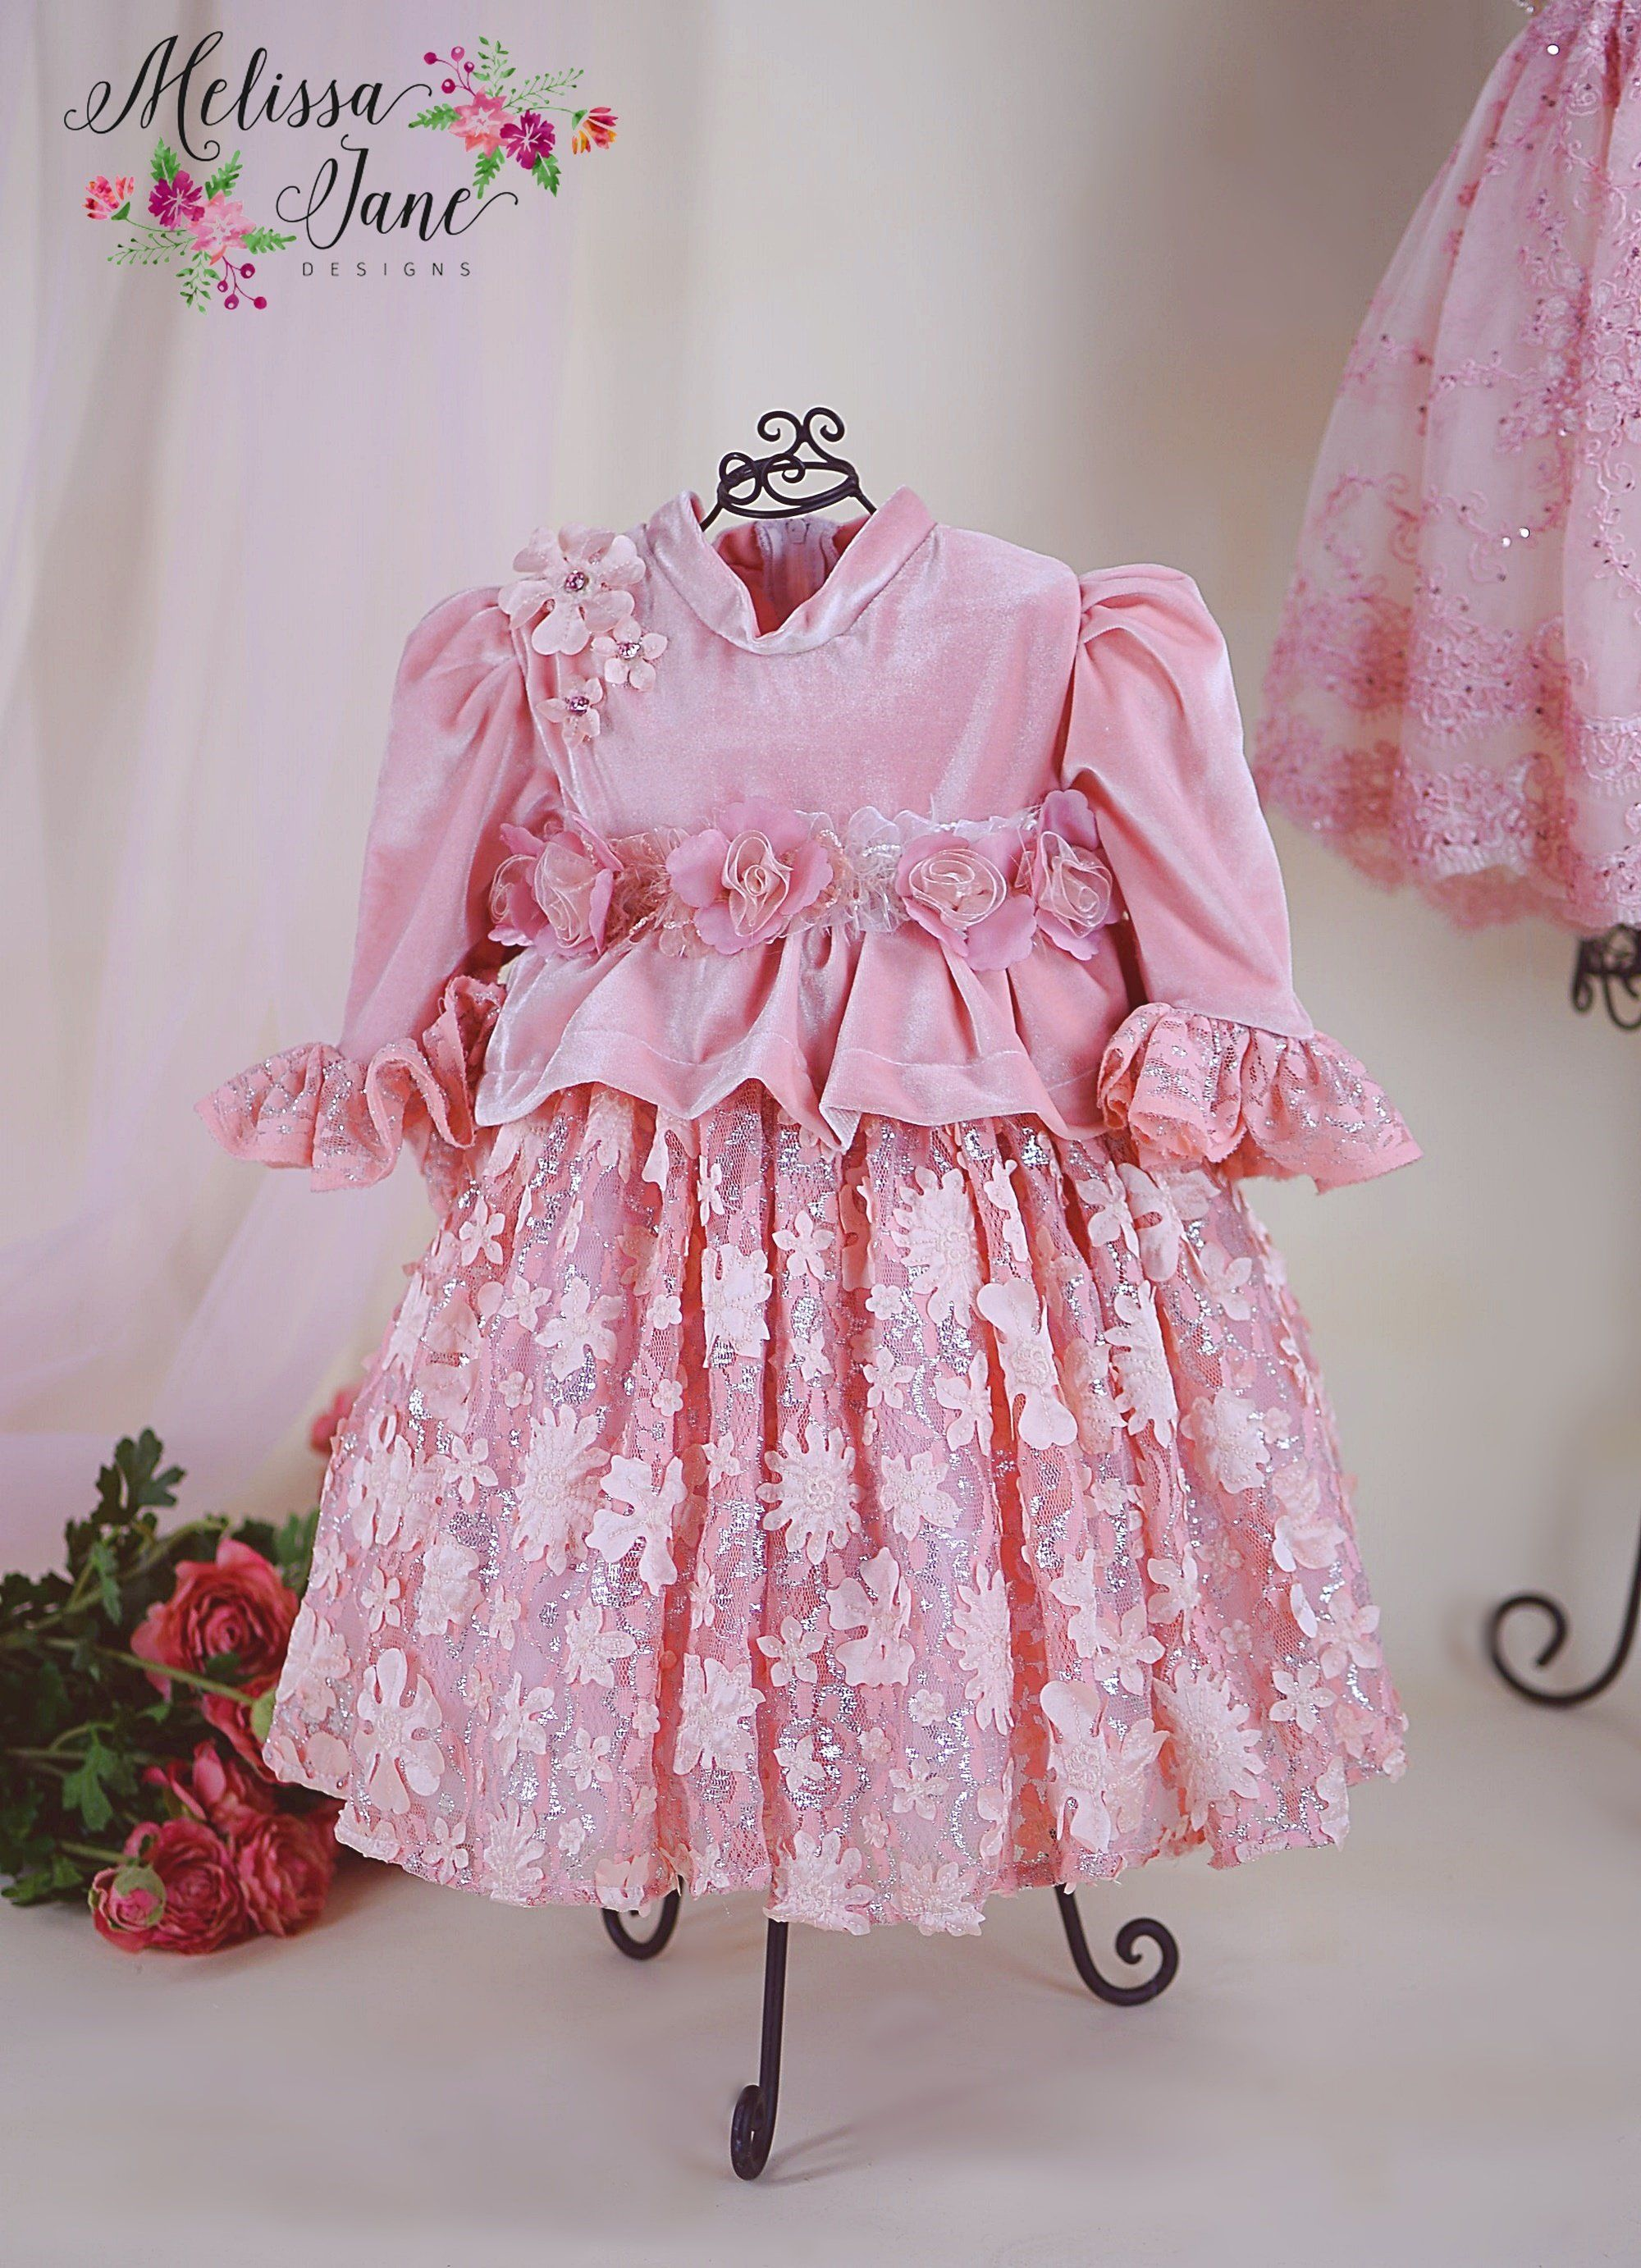 699d0e874 This is such a sweet baby dress (Limited Fabric)Soft Velvet Dress , high  neck with cute sleevespeplum waist adorned with fabric flower, full zipper  at the ...